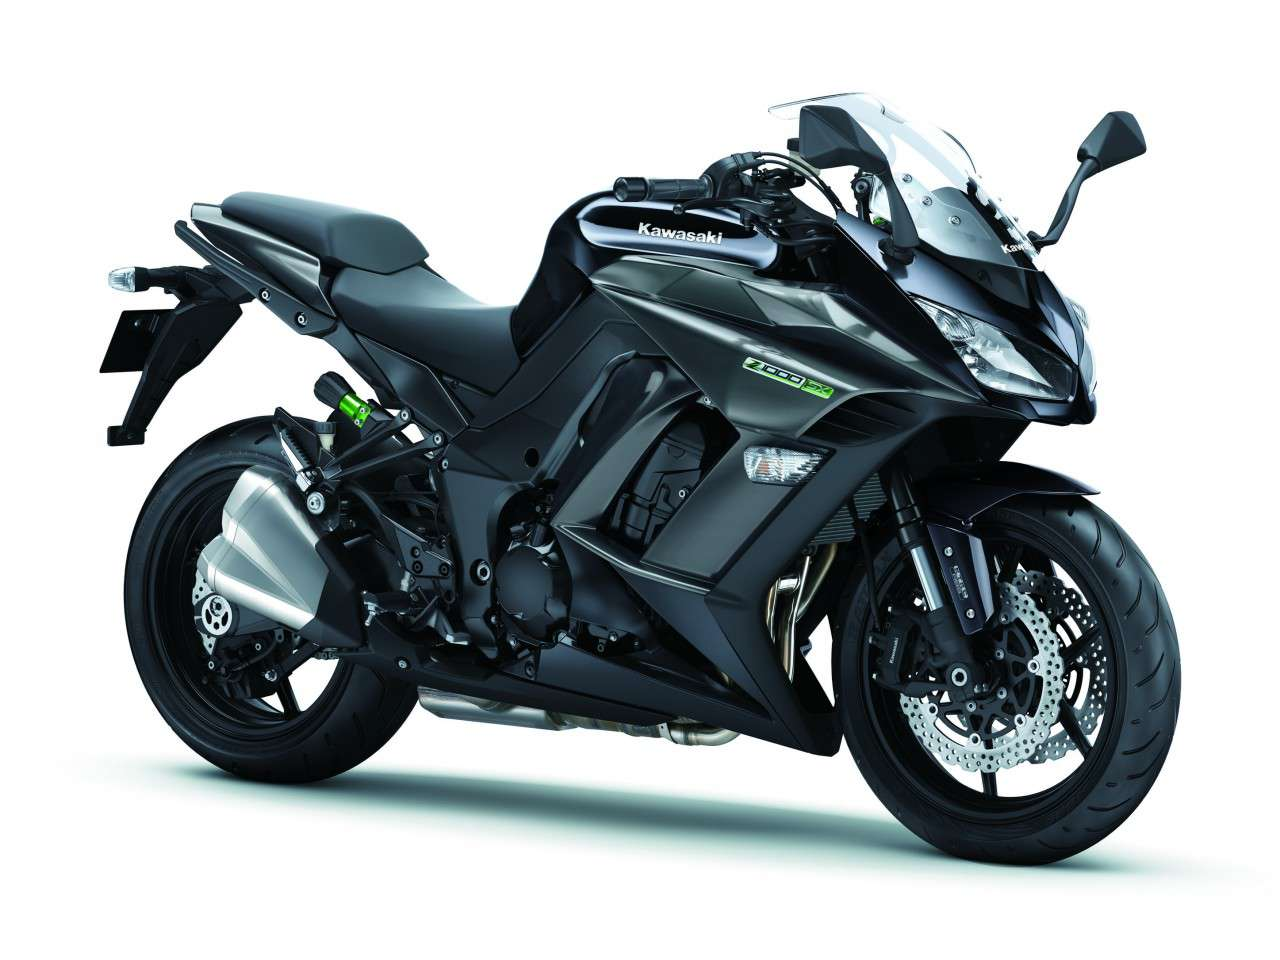 les nouvelles couleurs de la kawasaki z1000 sx 2015 objectif moto. Black Bedroom Furniture Sets. Home Design Ideas